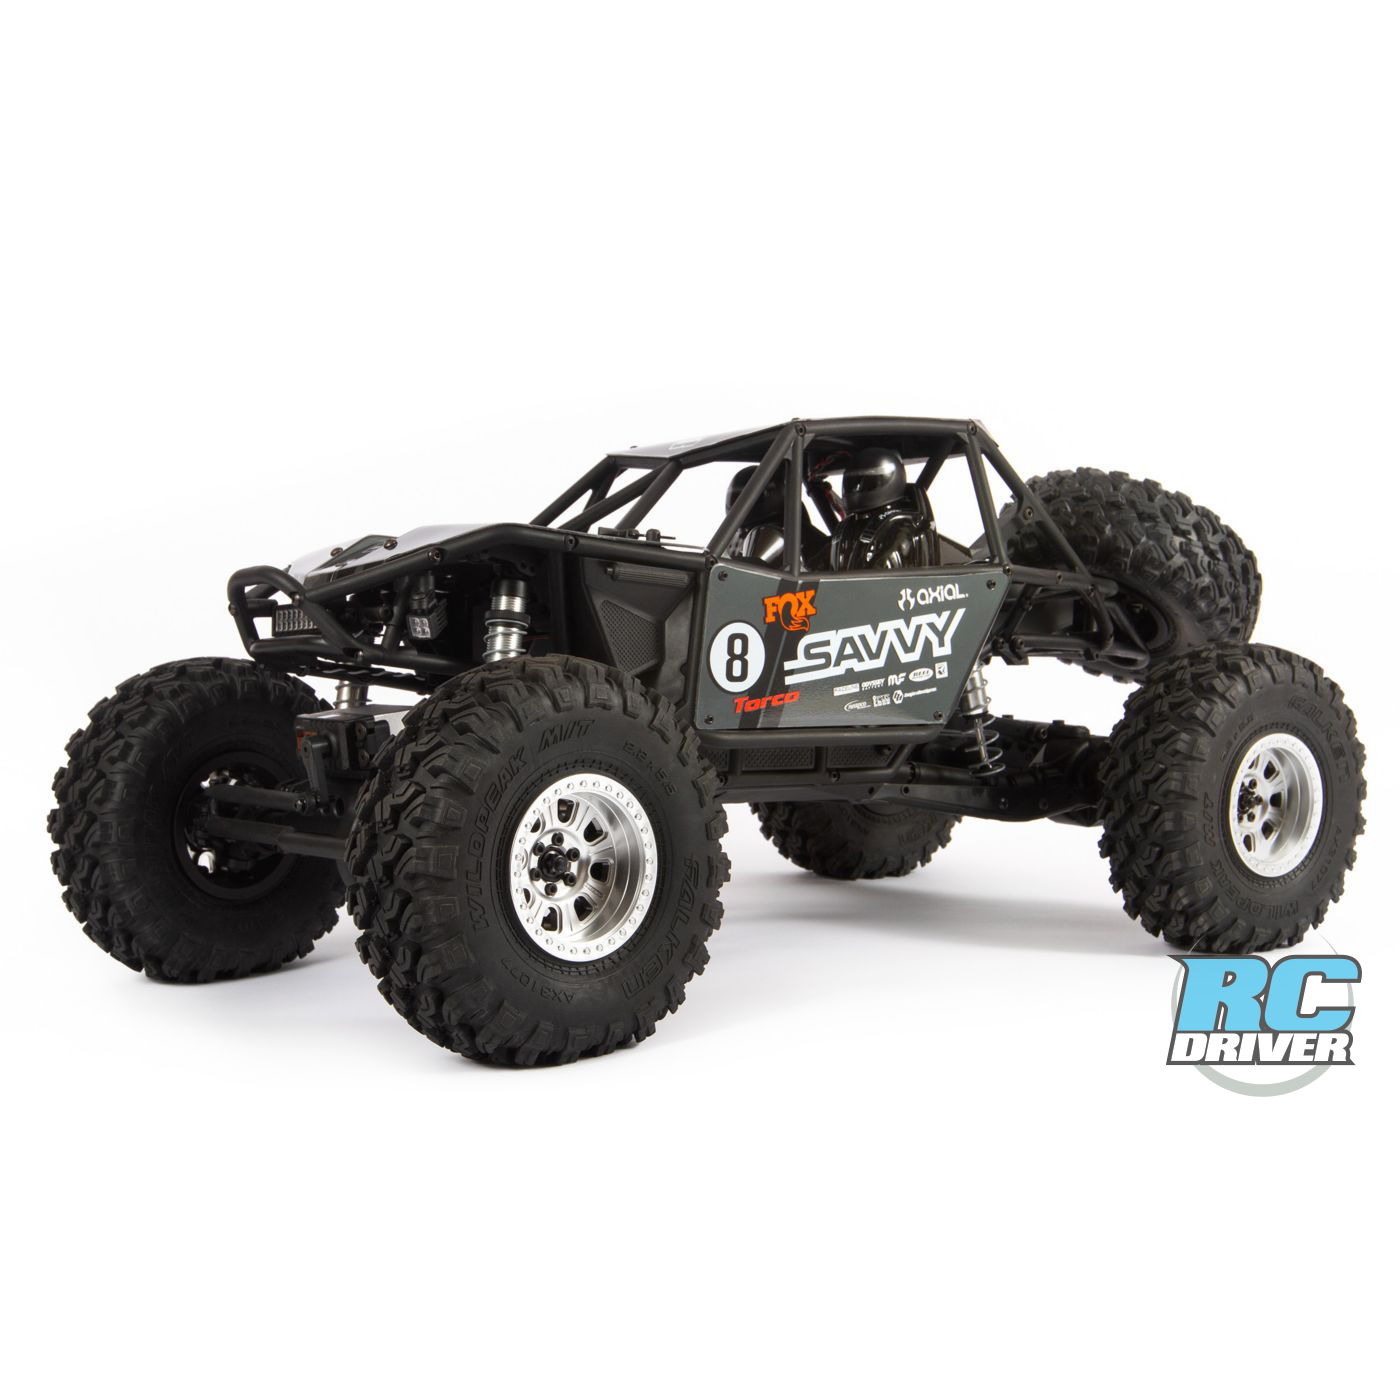 Updated Axial RR10 Bomber 2.0 4WD RTR